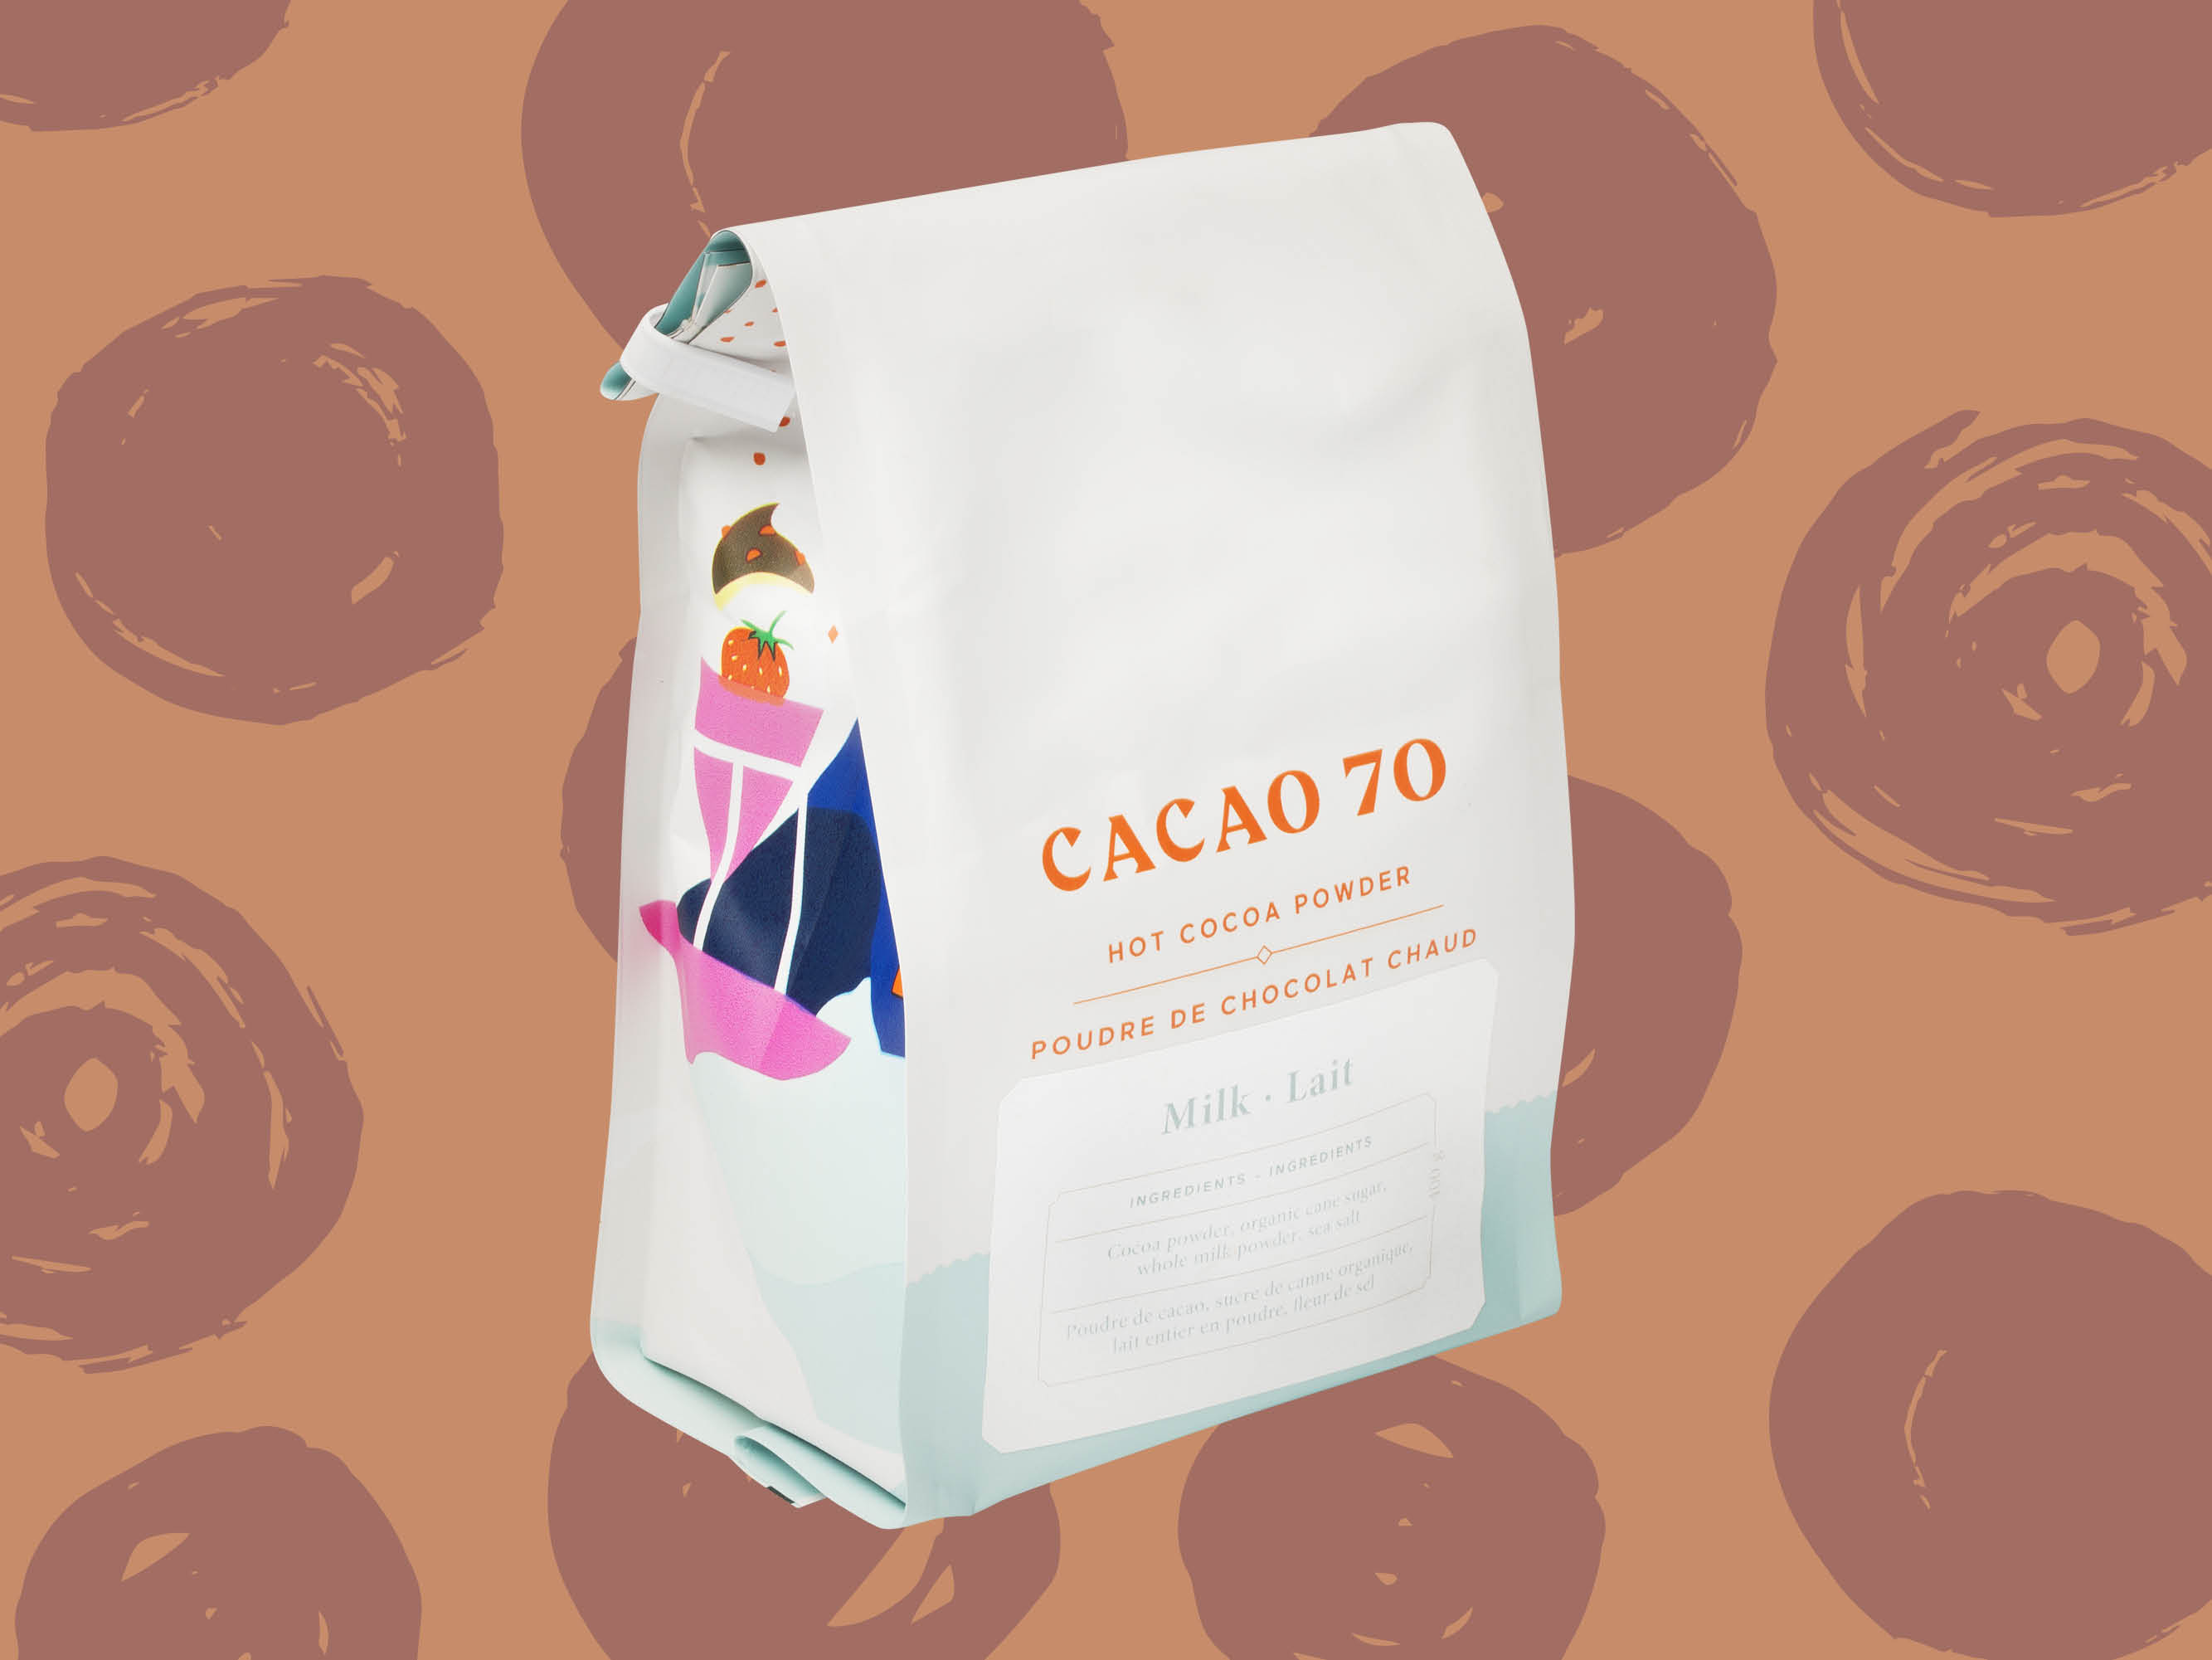 Bag of Cacao 70 hot chocolate mix on brown background